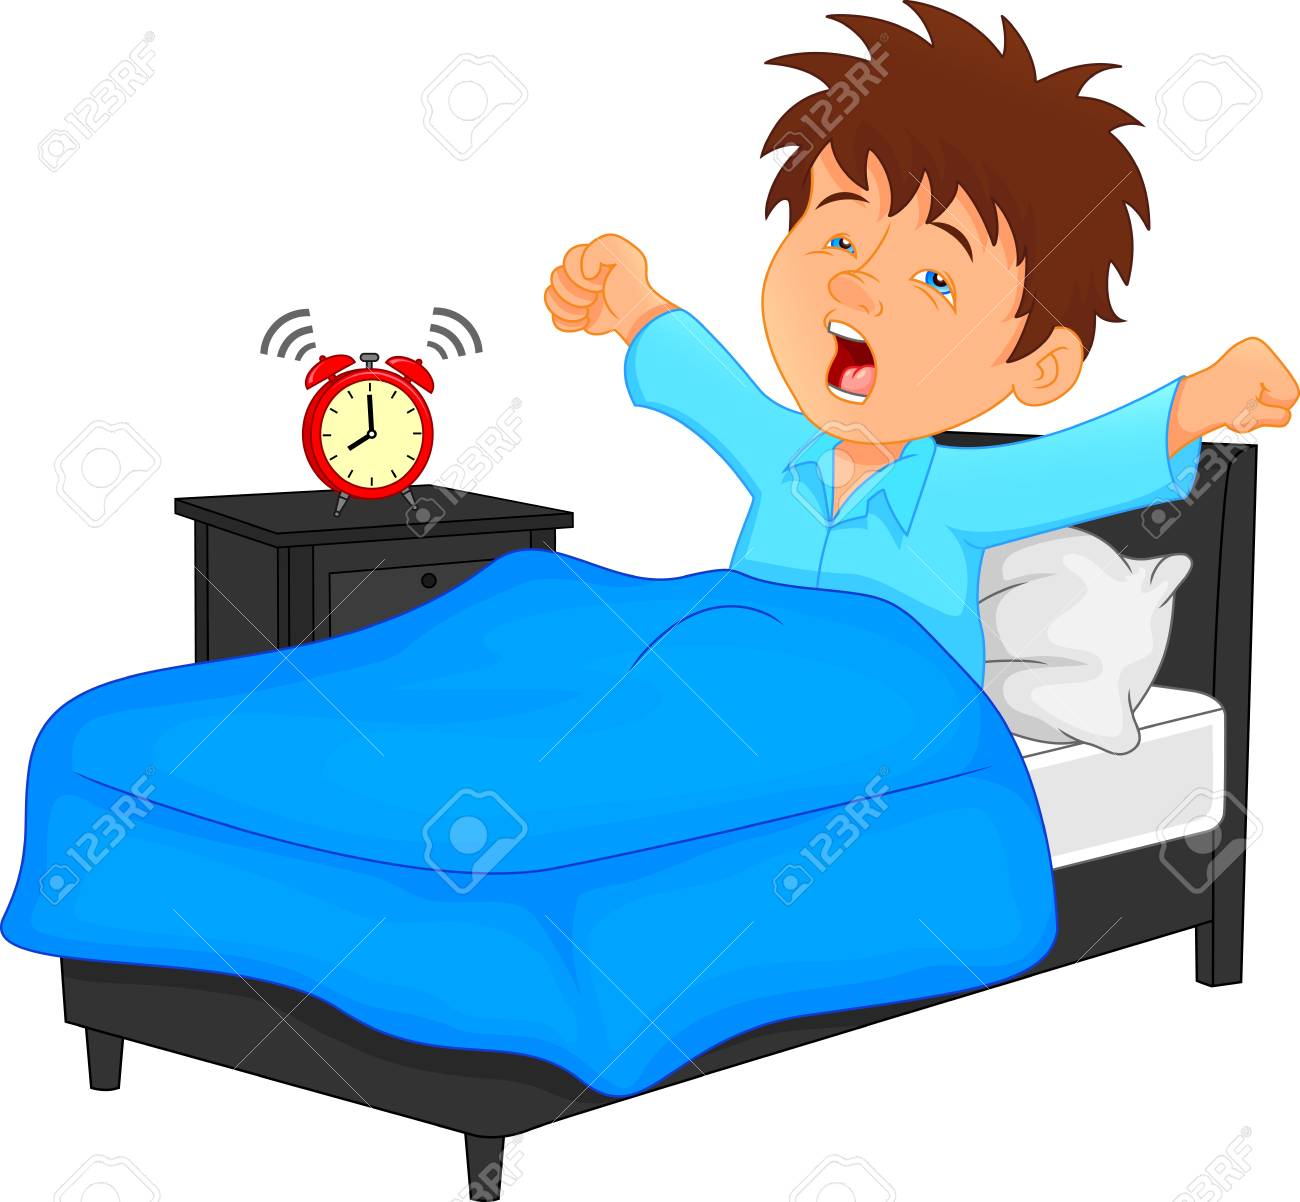 little boy wake up in the morning royalty free cliparts vectors rh 123rf com waking up clipart black and white waking up clipart images